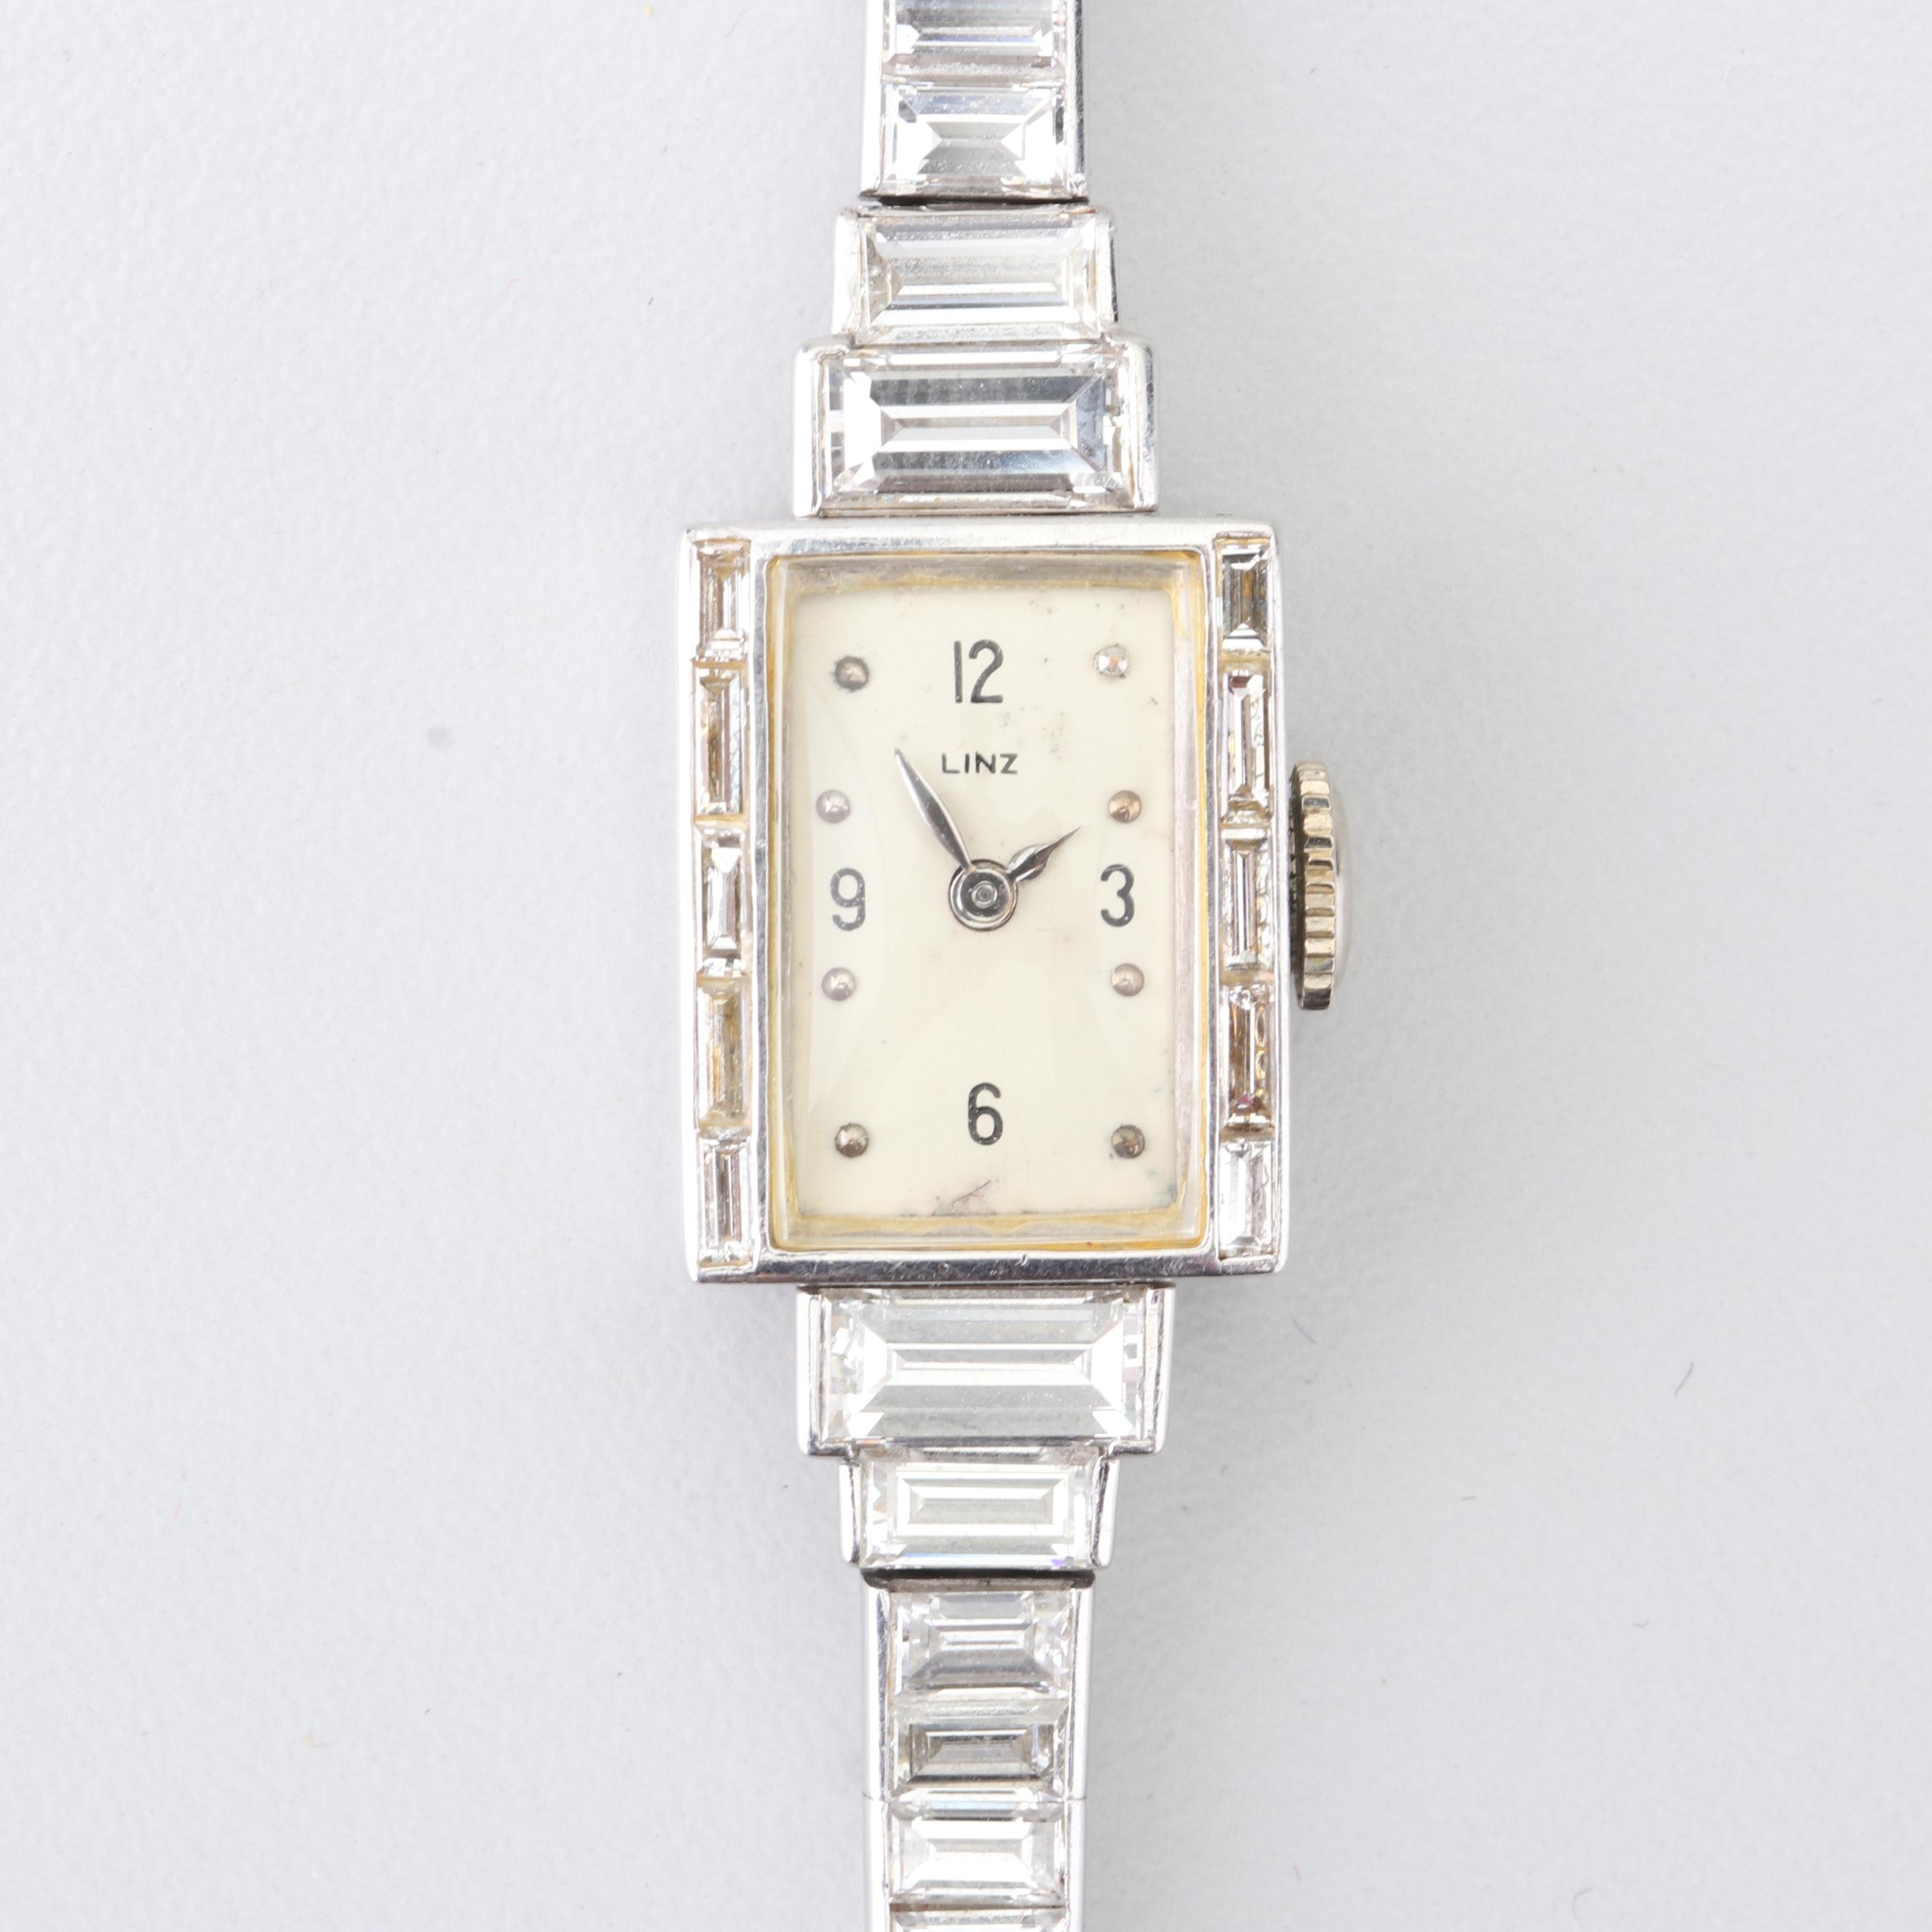 Linz Platinum 8.65 CTW Diamond Wristwatch, Circa 1920